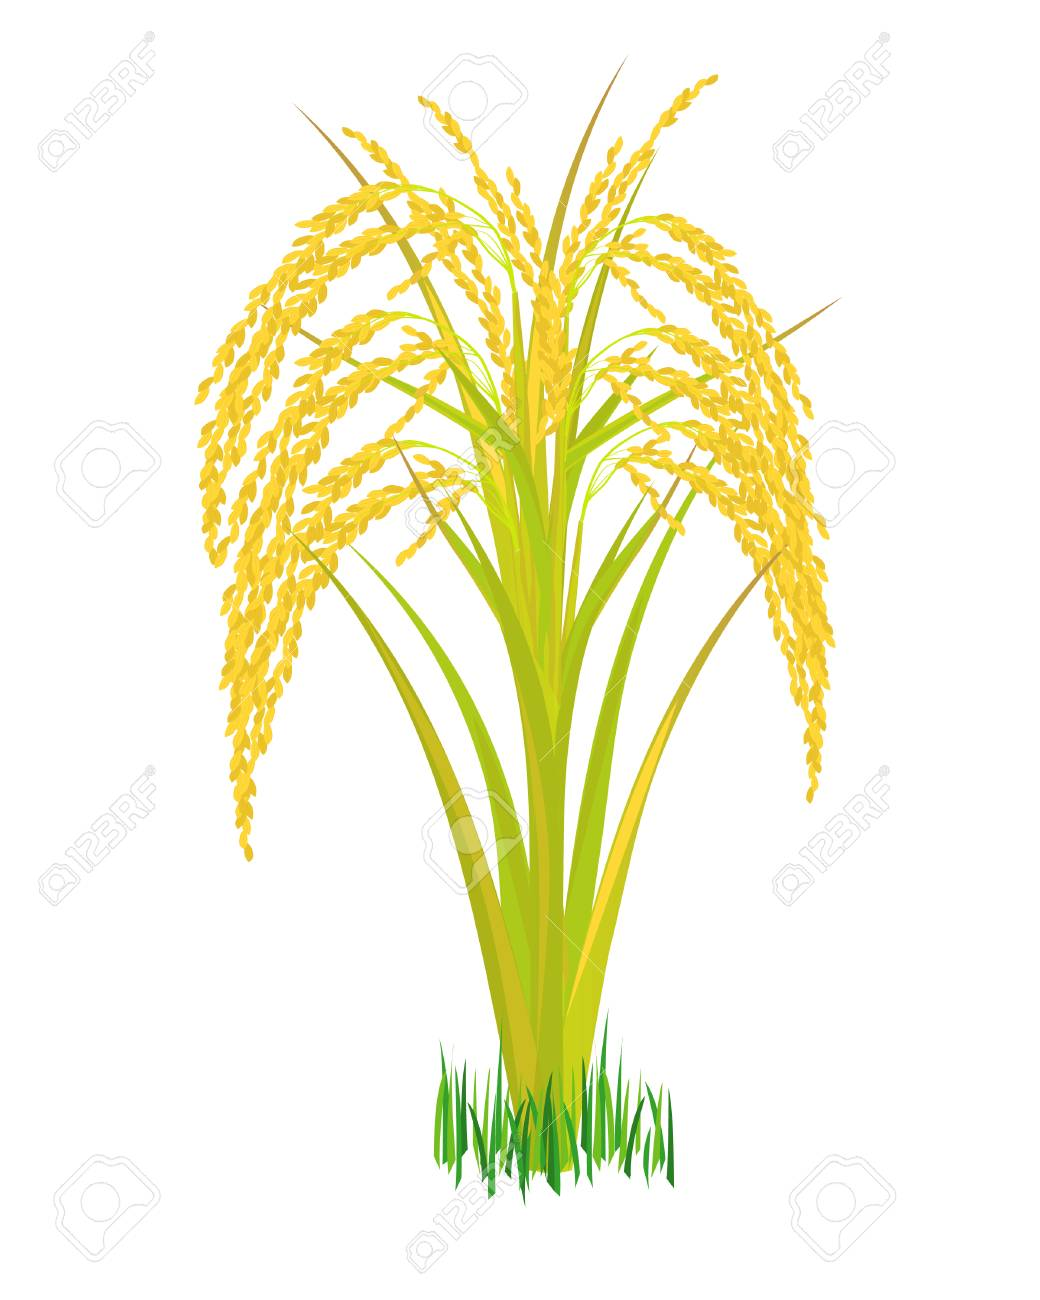 rice plant vector design royalty free cliparts vectors and stock illustration image 116067413 rice plant vector design